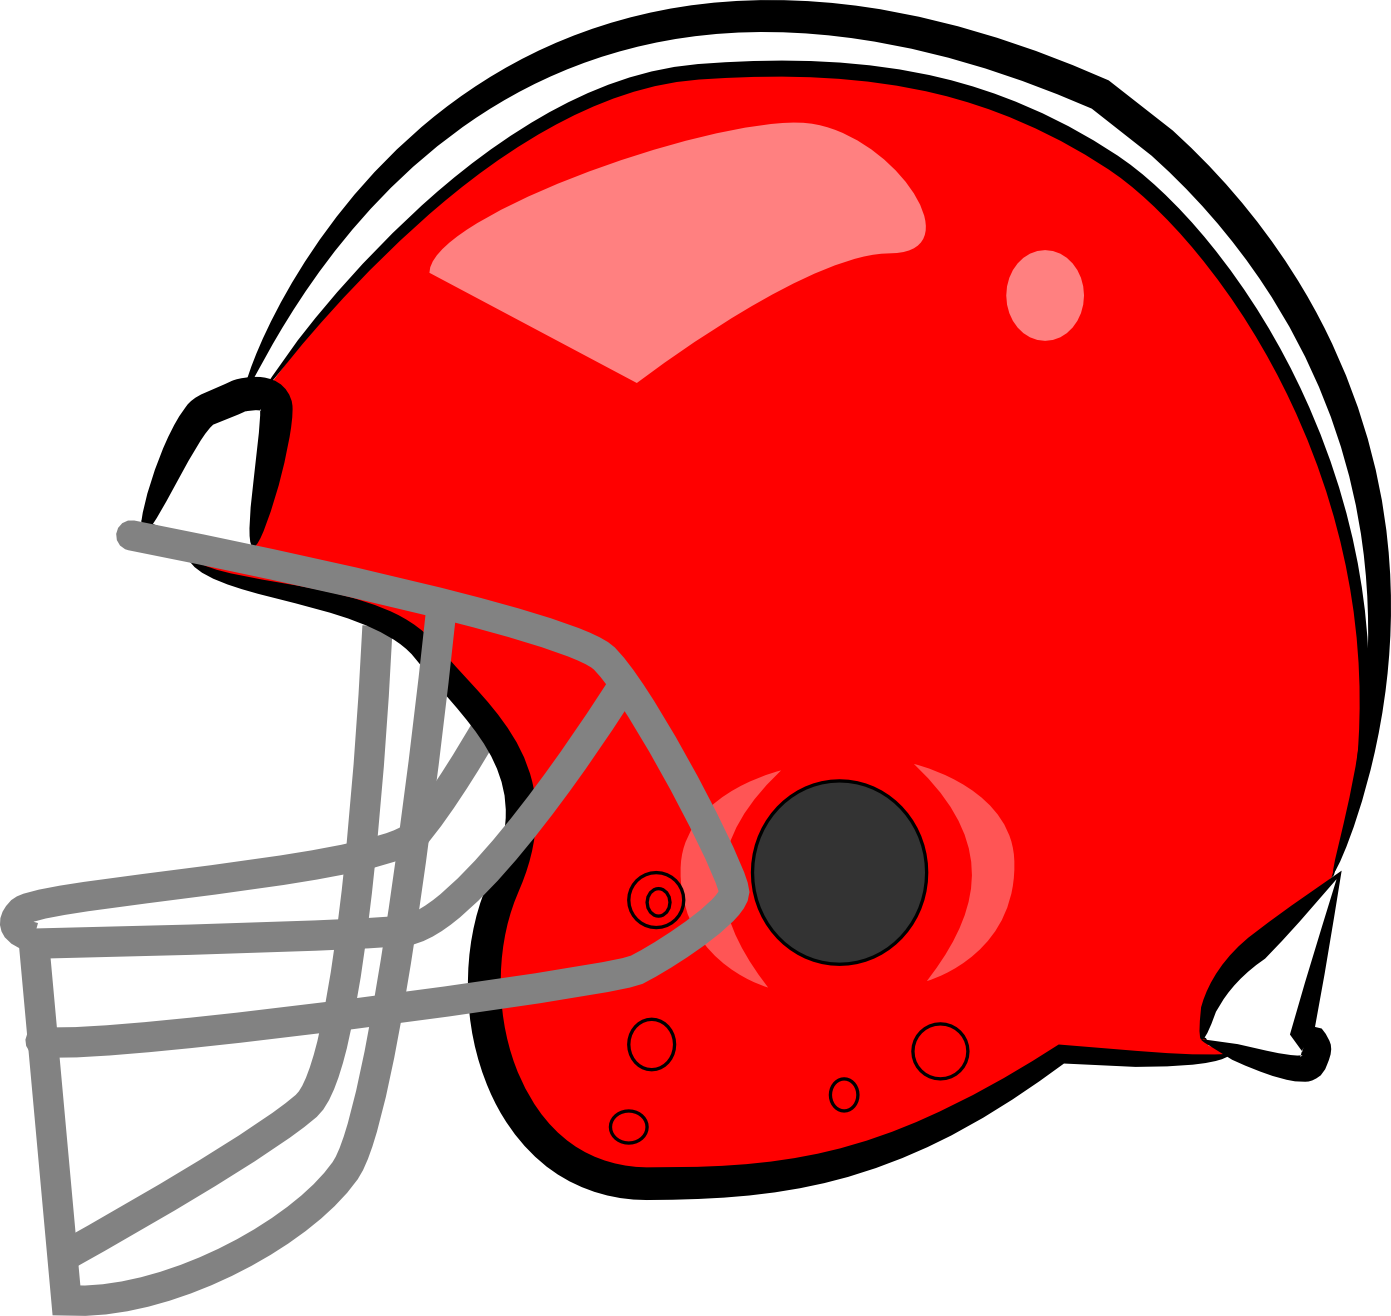 Football clipart with flames png. Alabama at getdrawings com